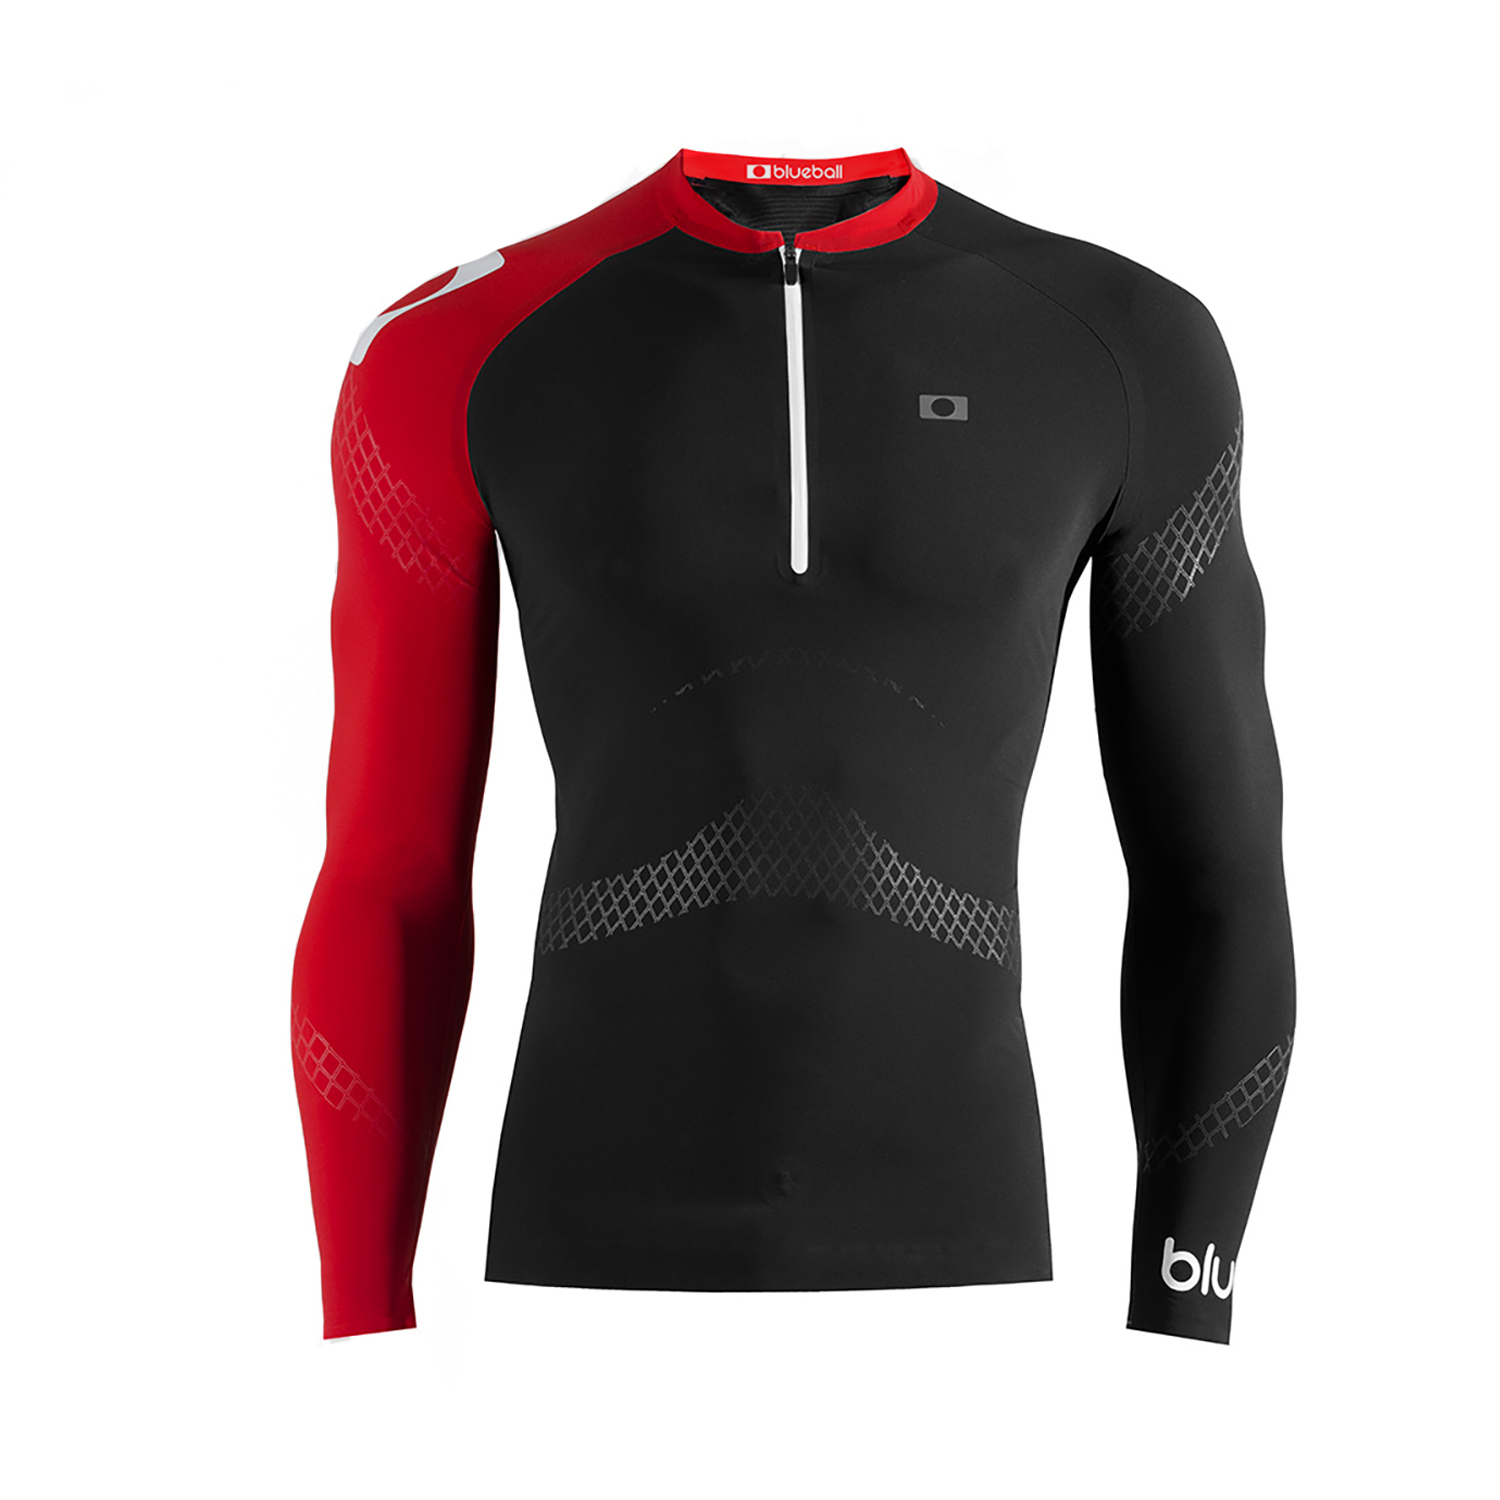 Watersport compression tshirt